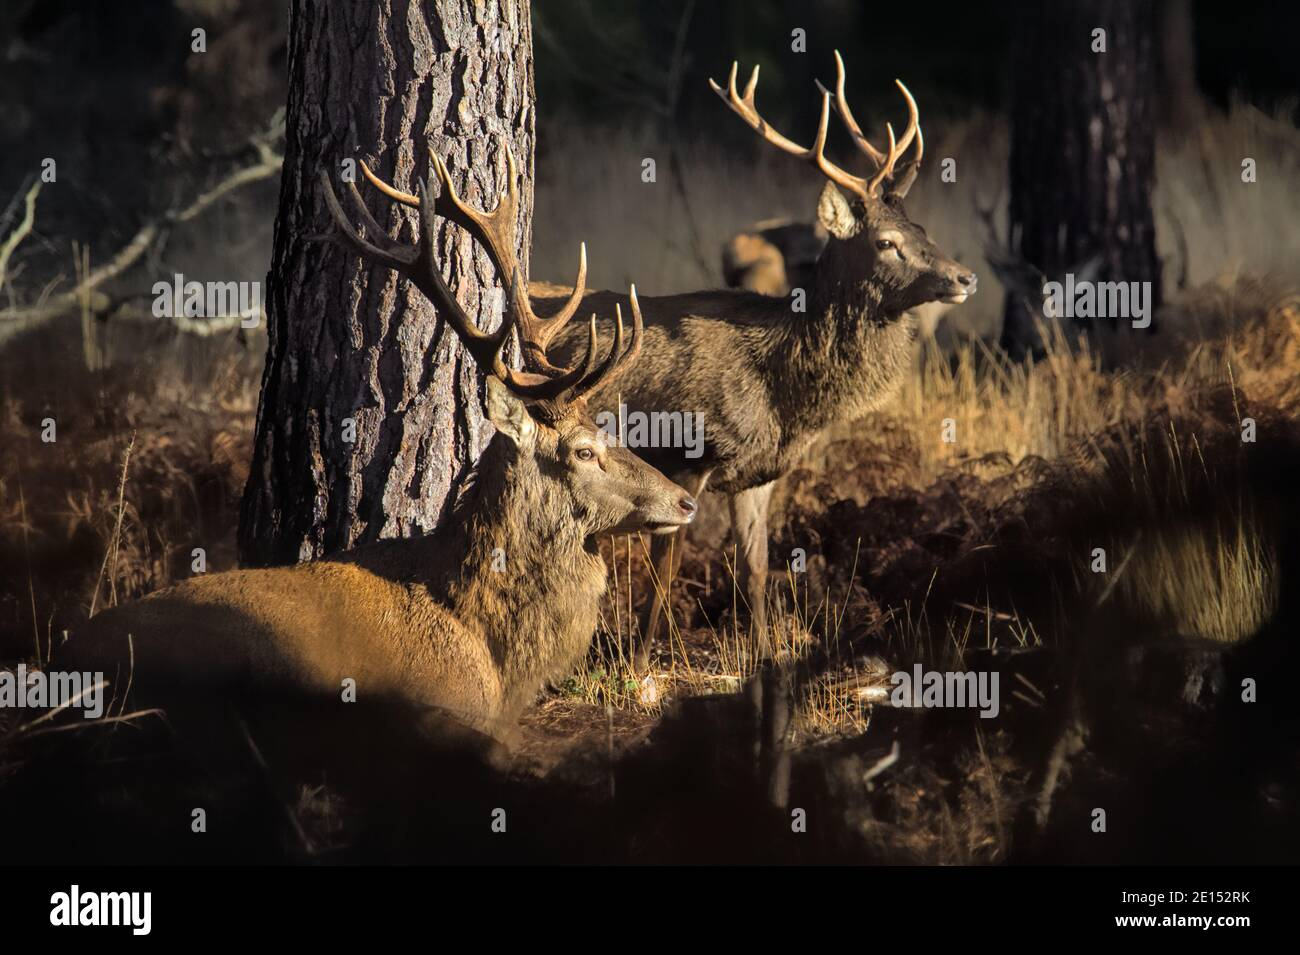 old-male-red-deer-stagcervus-elaphus-with-antlers-sitting-next-to-a-pine-tree-in-the-sunlight-next-to-a-standing-young-deer-stag-with-antlers-new-f-2E152RK.jpg